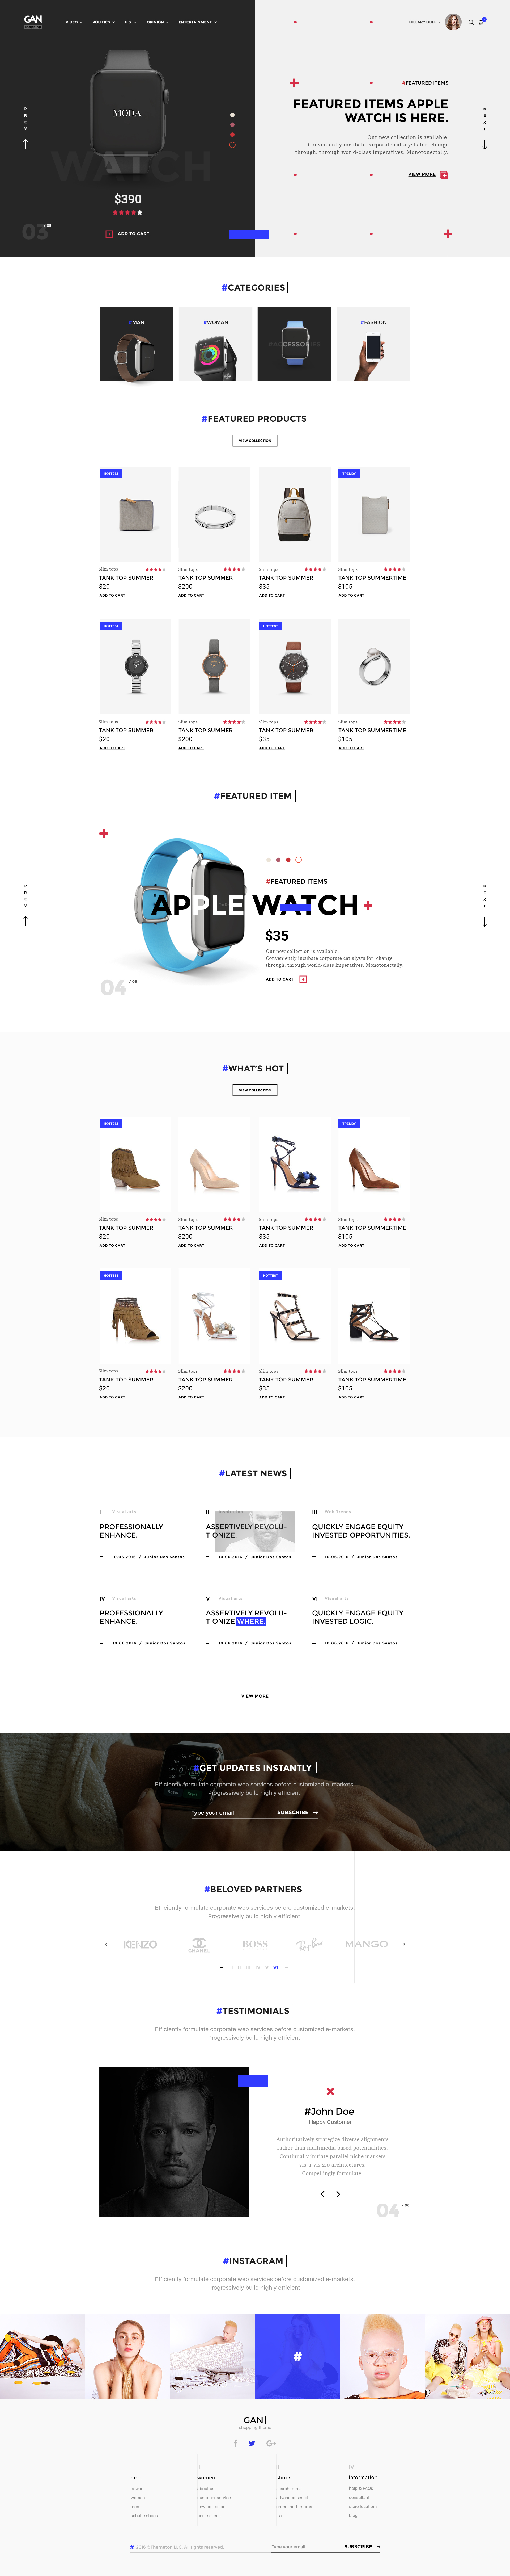 gan ultimate shopping ecommerce psd template by themeton themeforest. Black Bedroom Furniture Sets. Home Design Ideas